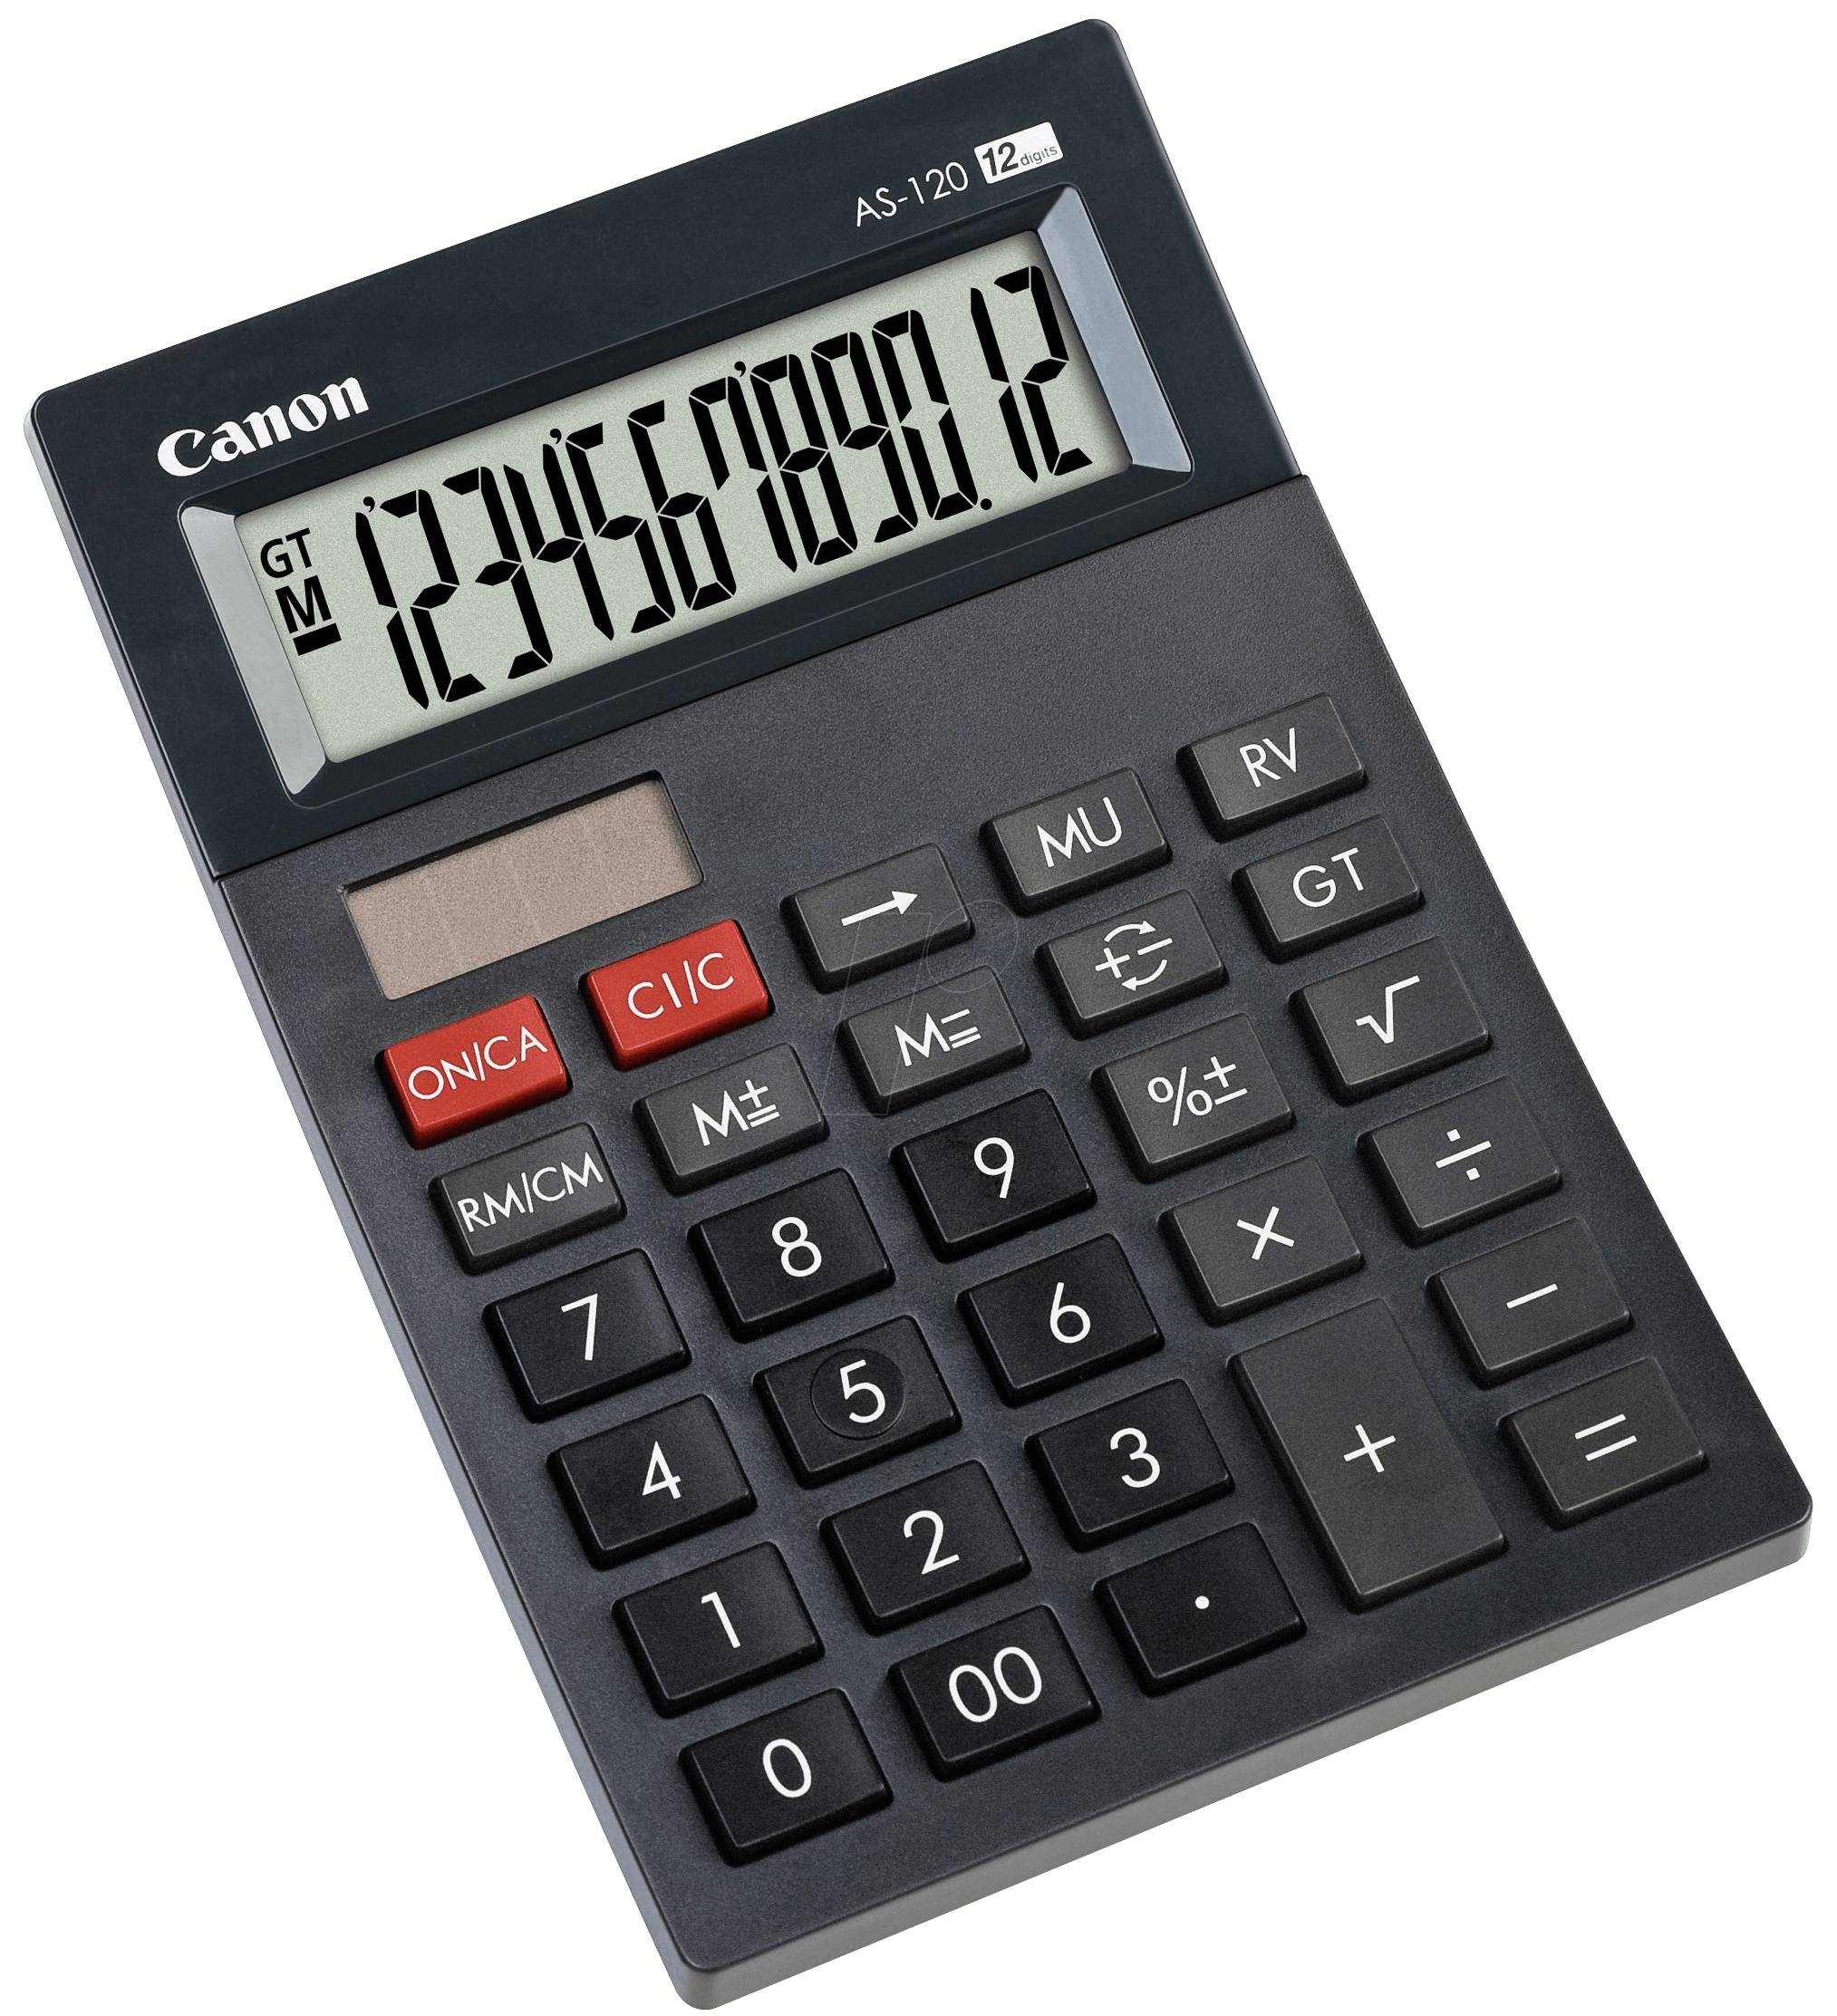 Canon AS-120 - Mini calculator, black